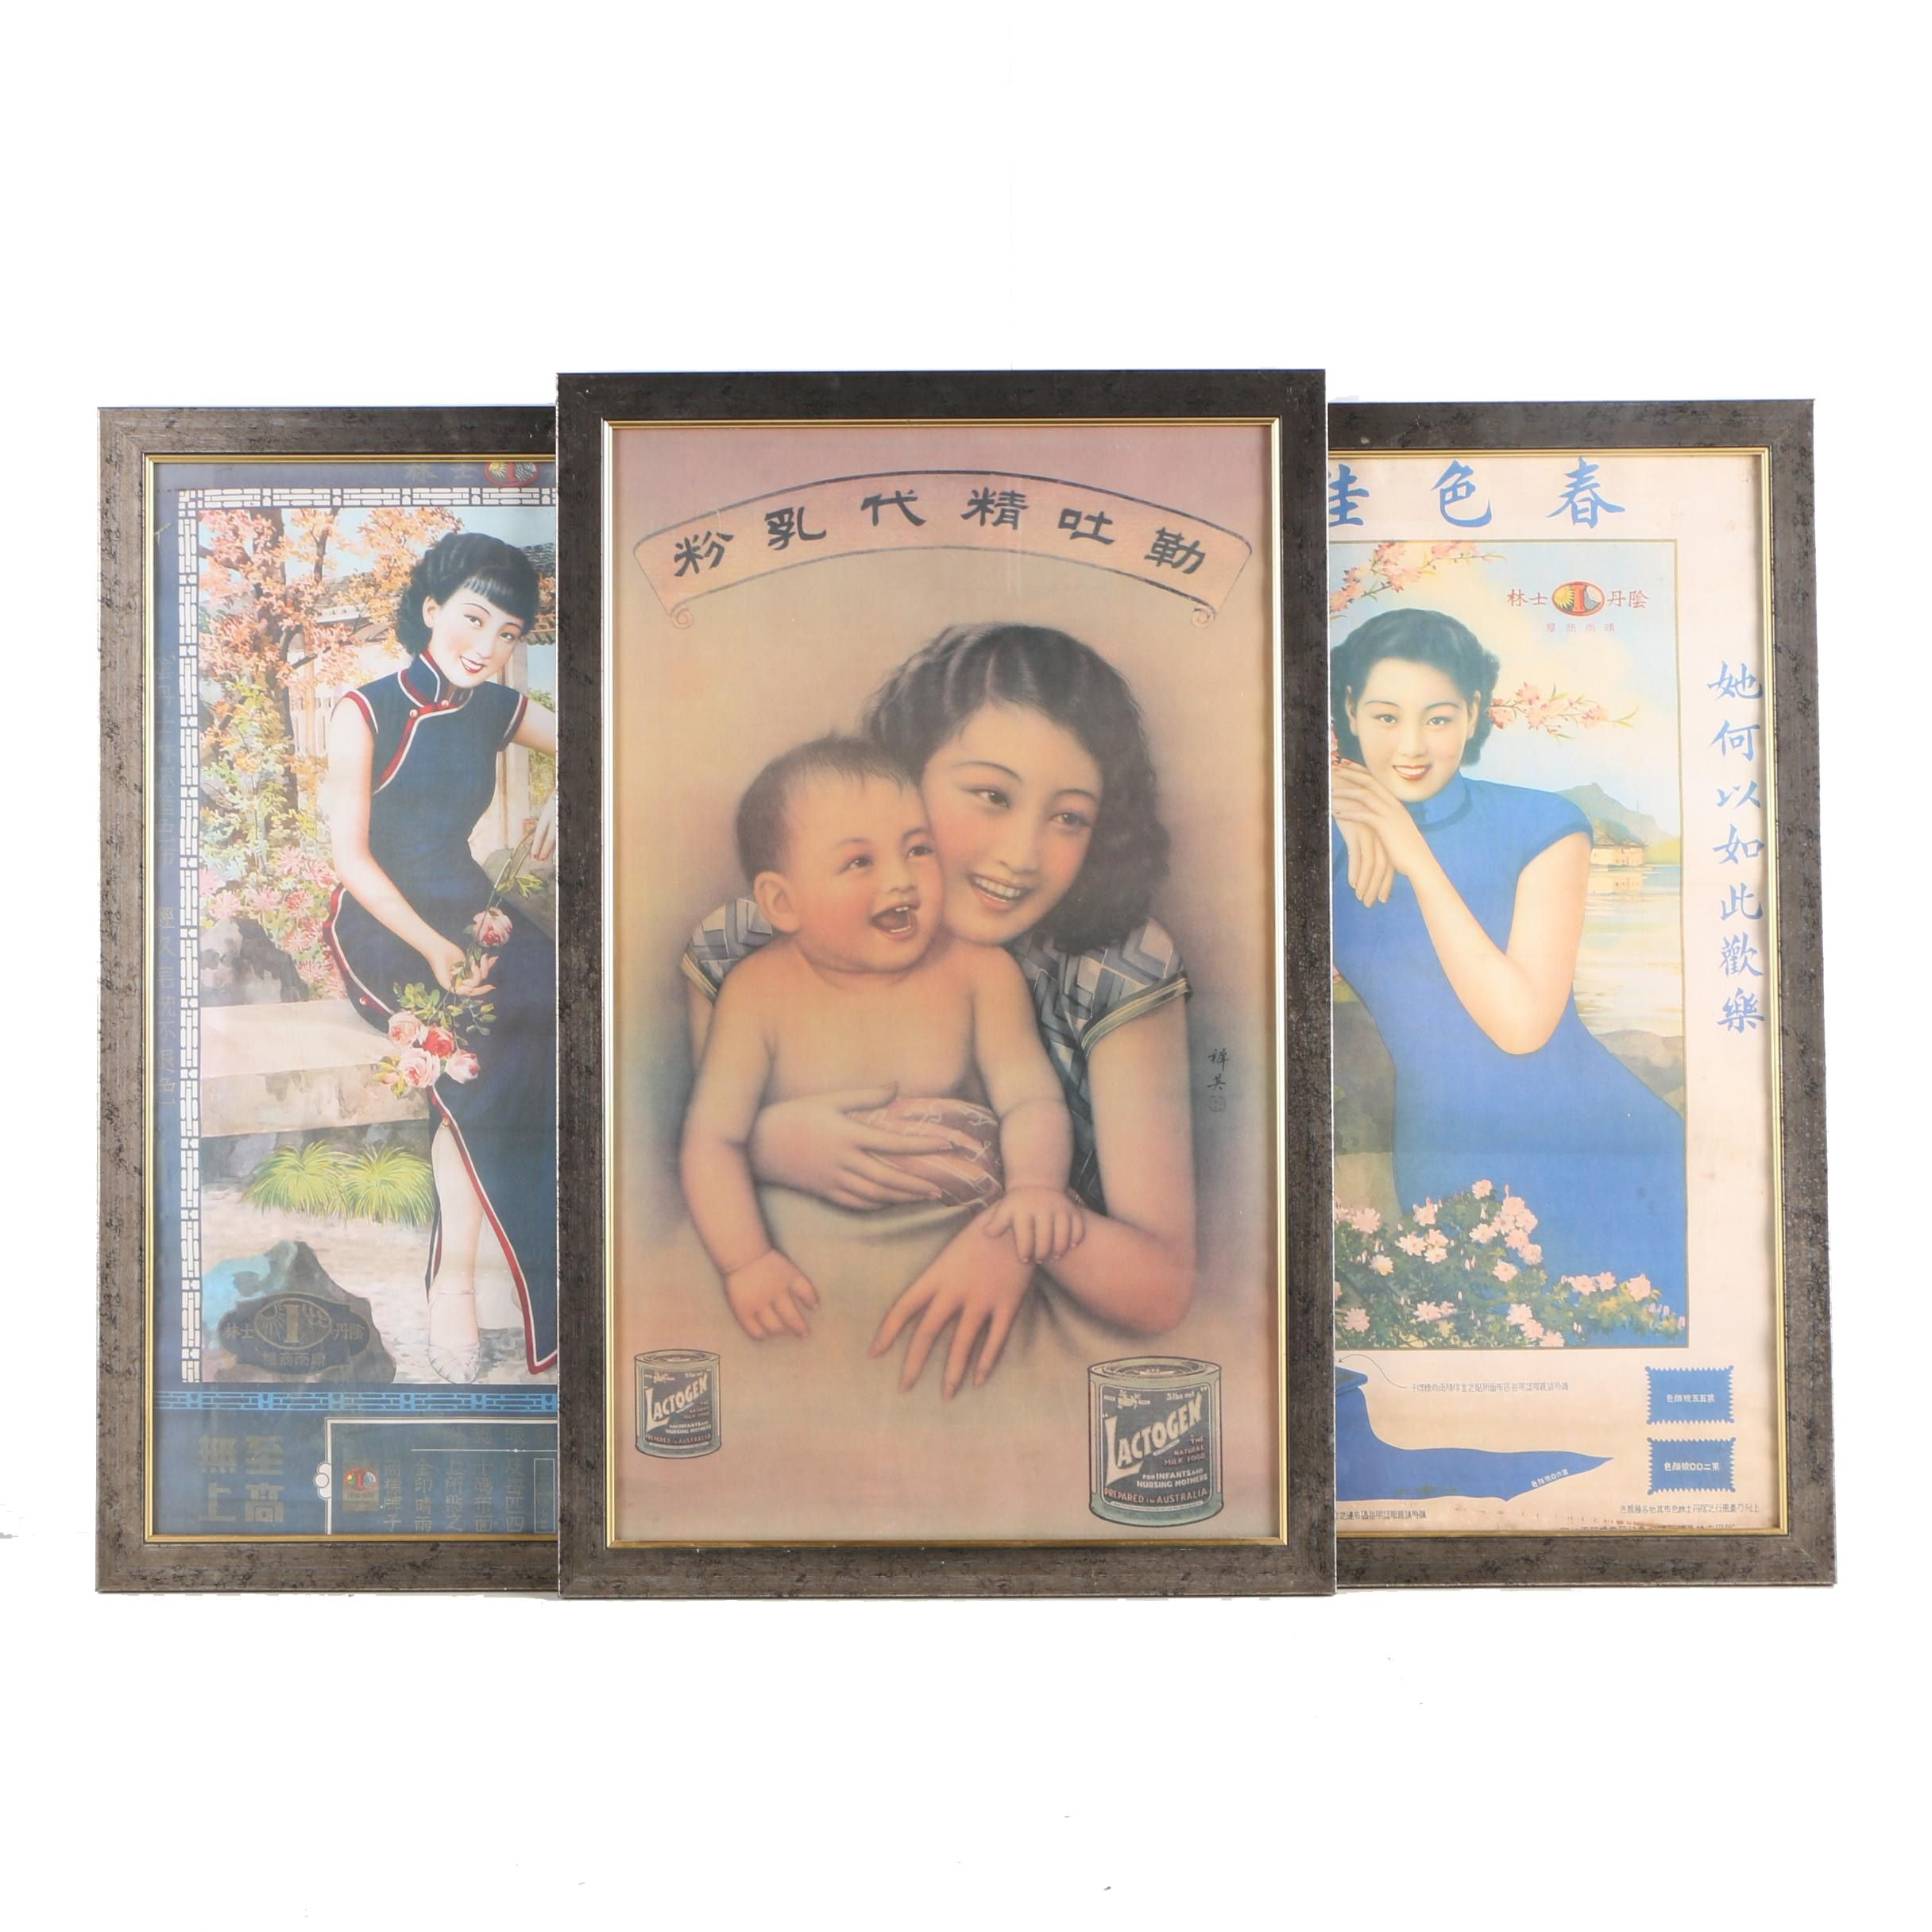 Vintage Chinese Advertising Offset Lithographic Posters